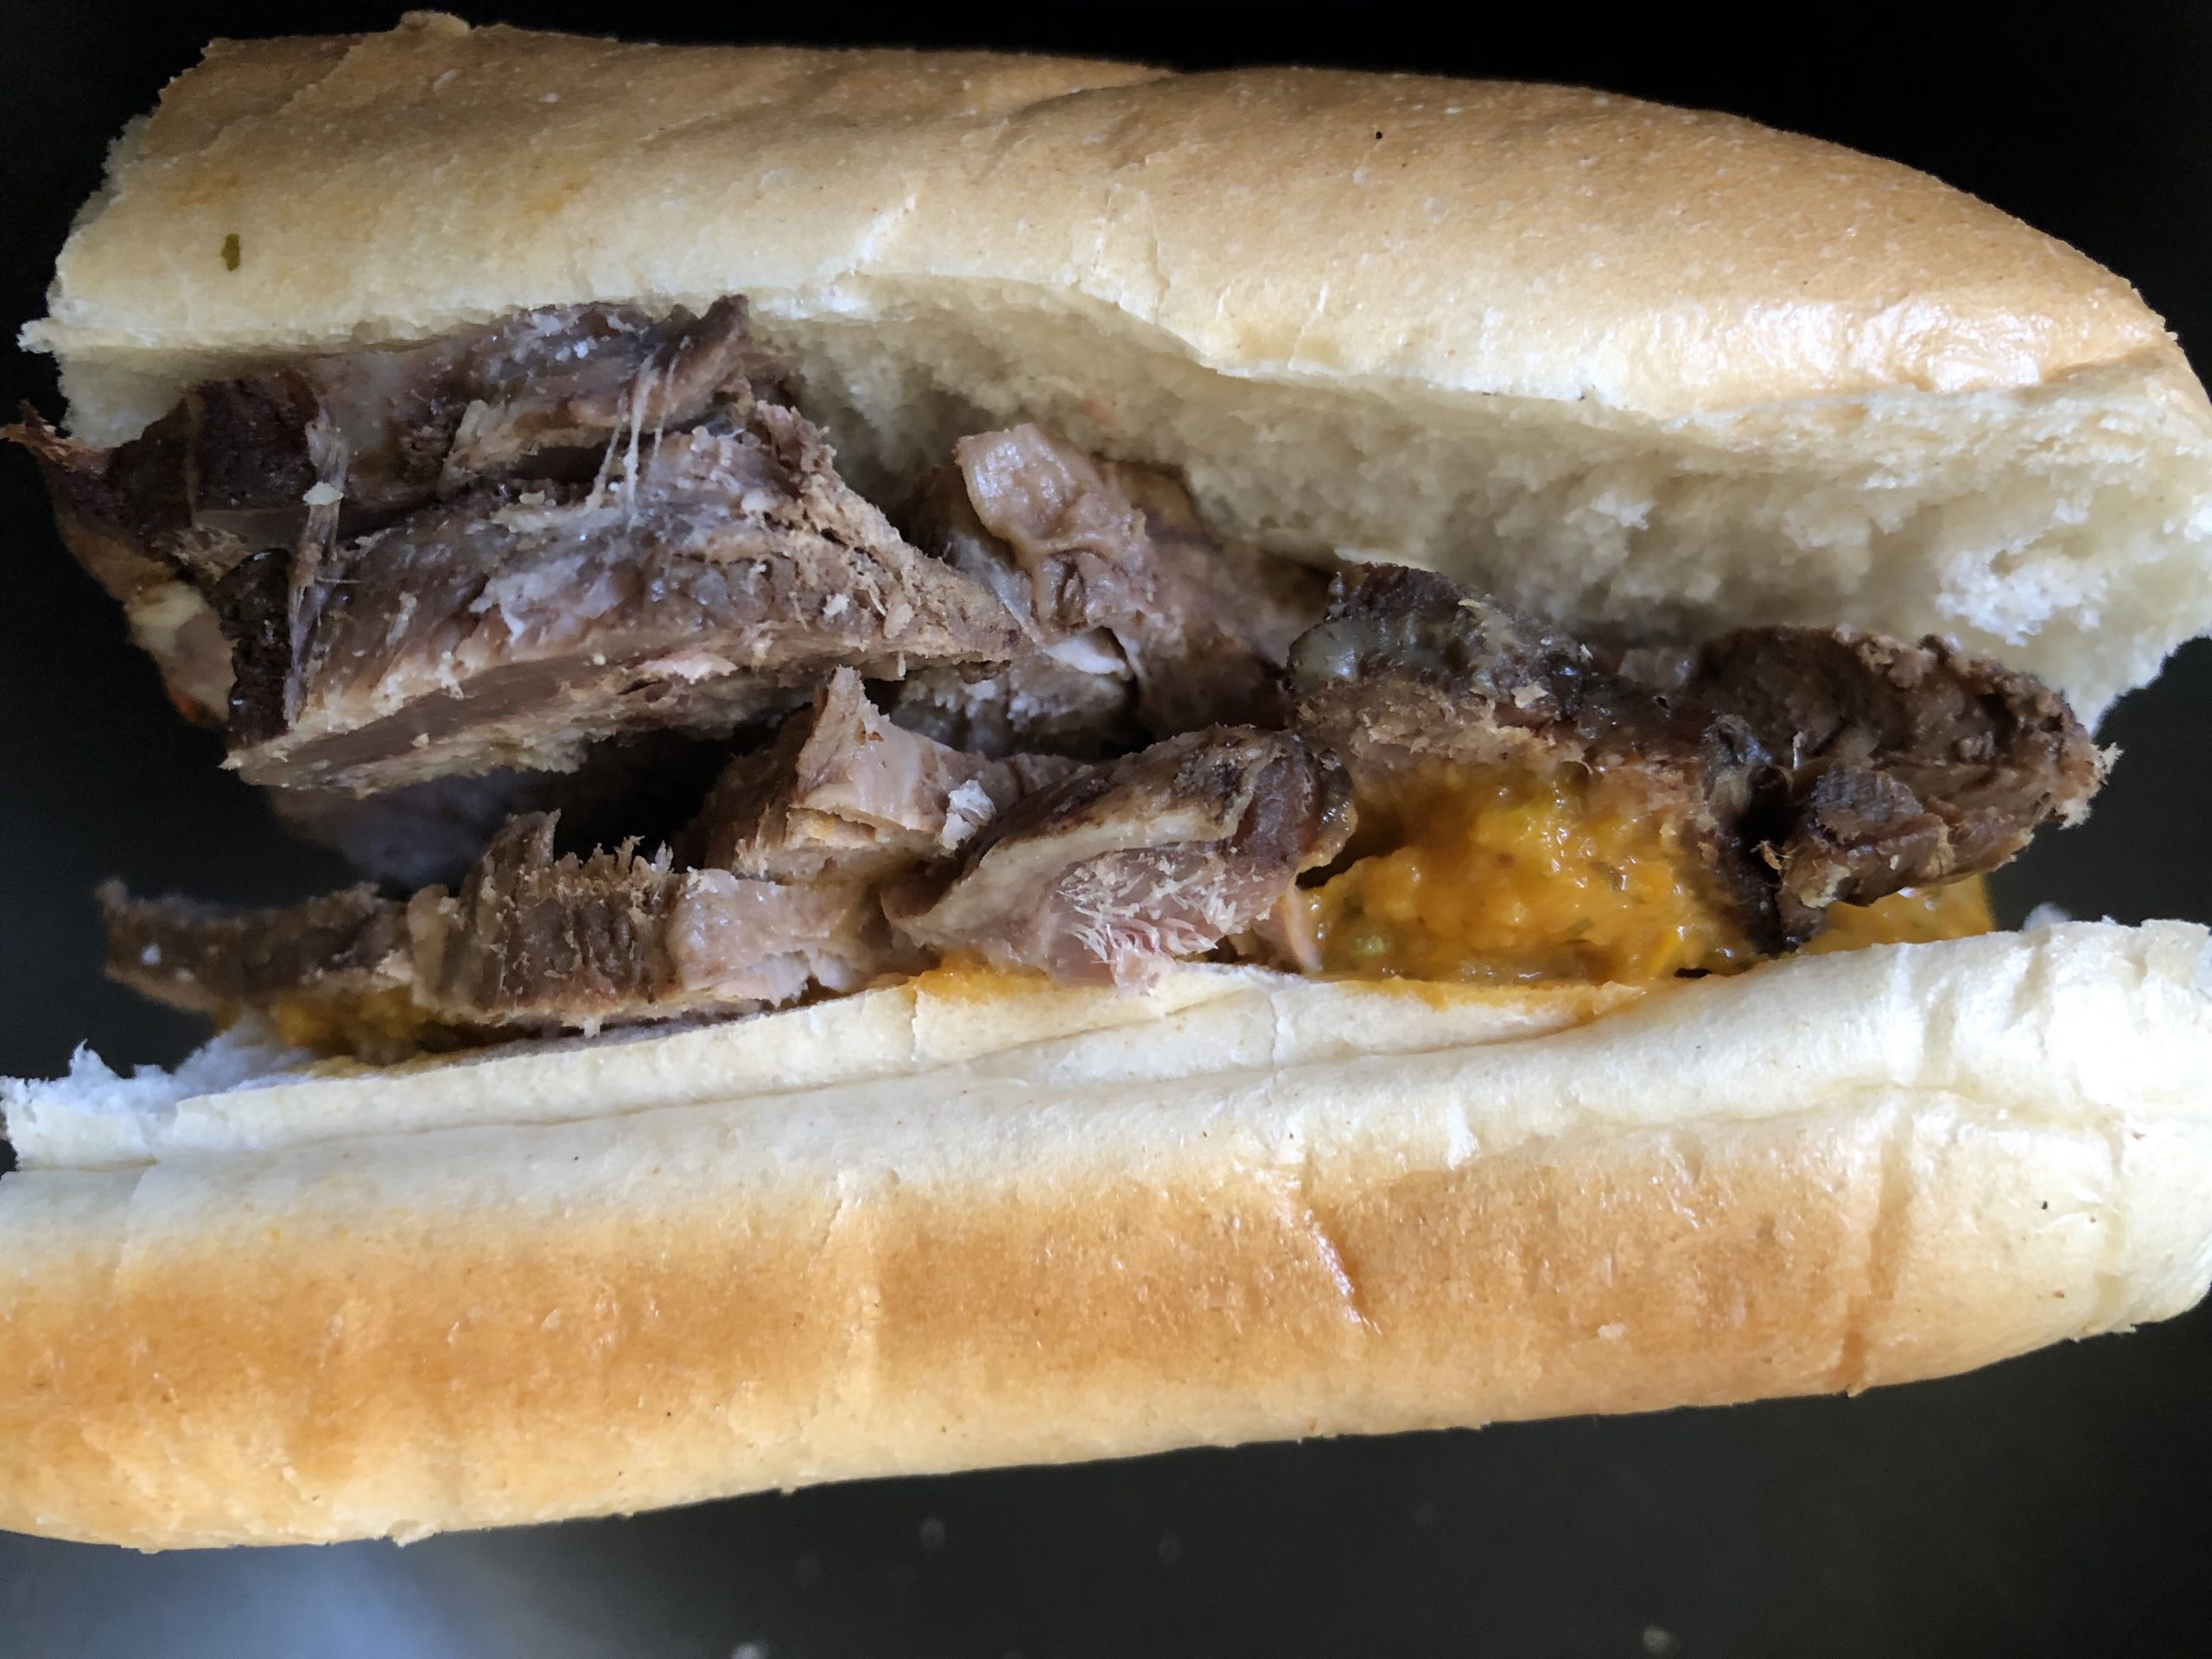 Roast beef sandwich with yellow pepper/cilantro salsa